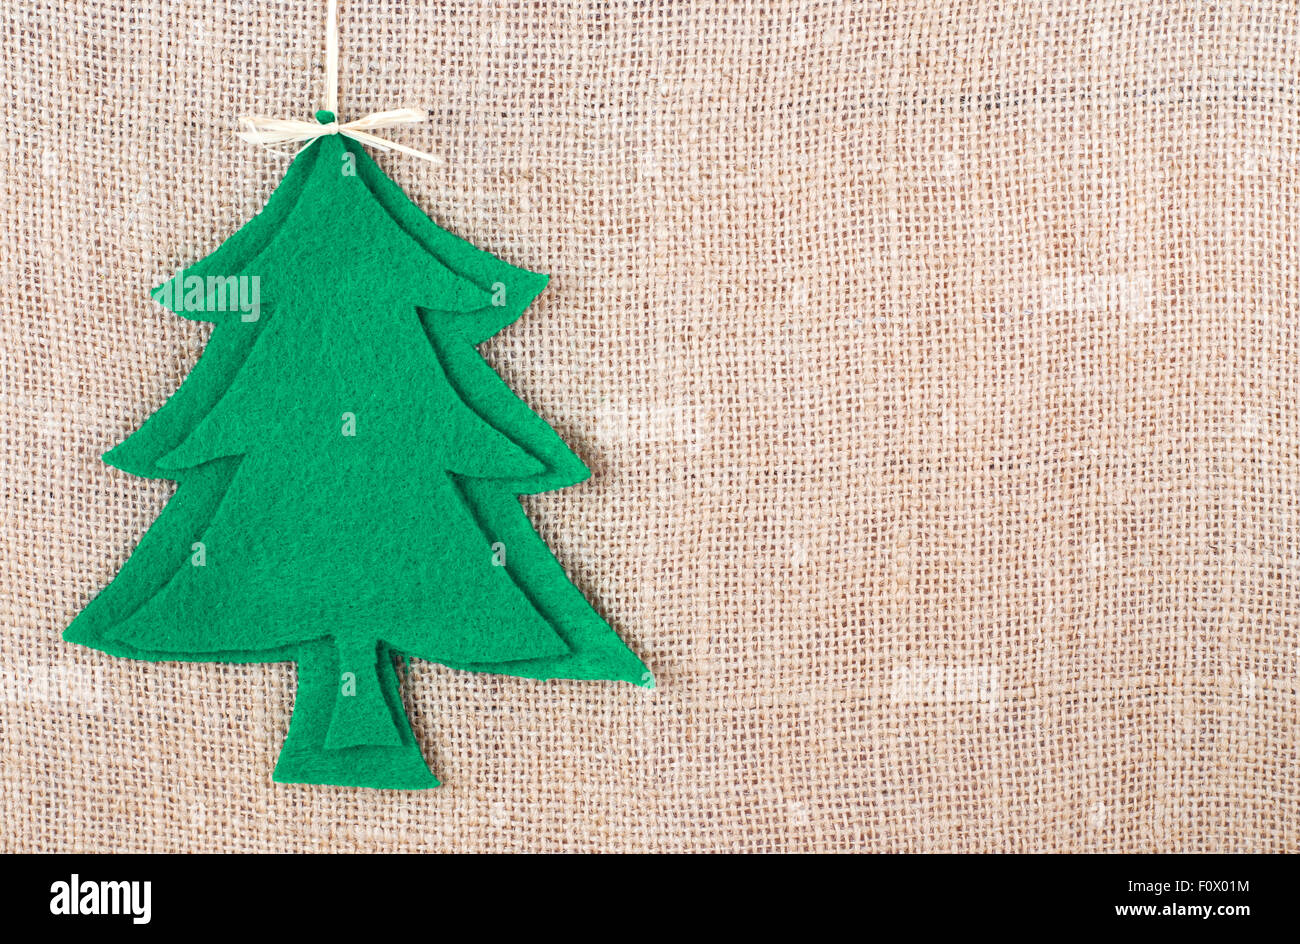 Rustic Christmas Image With Tree Cut Out Of Felt On Burlap Background Copyspace